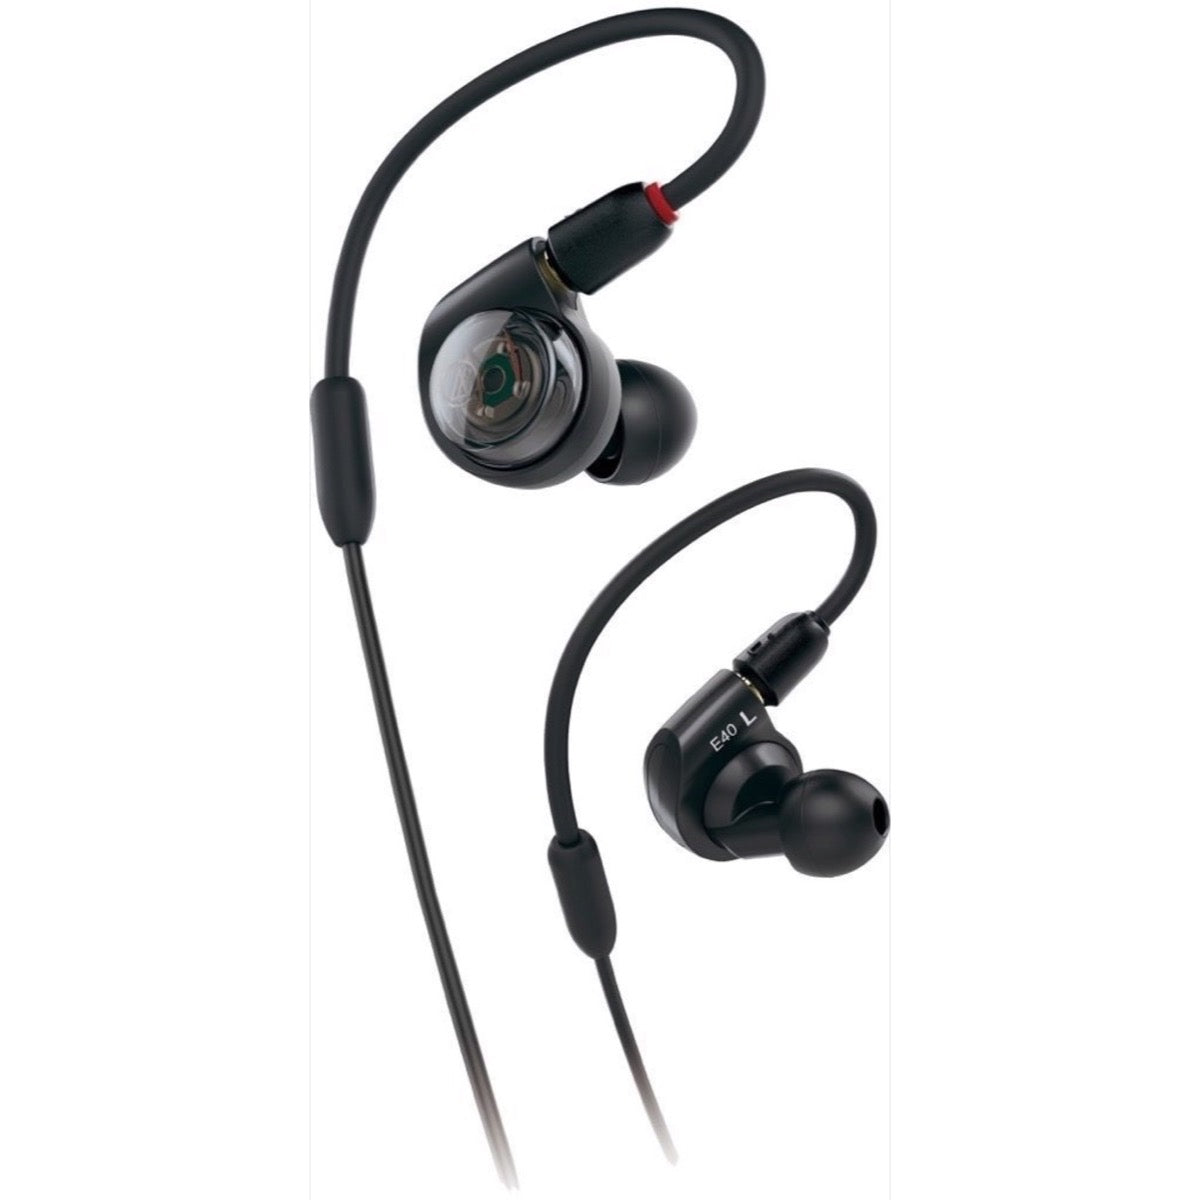 Audio-Technica ATH-E40 Professional In-Ear Monitors